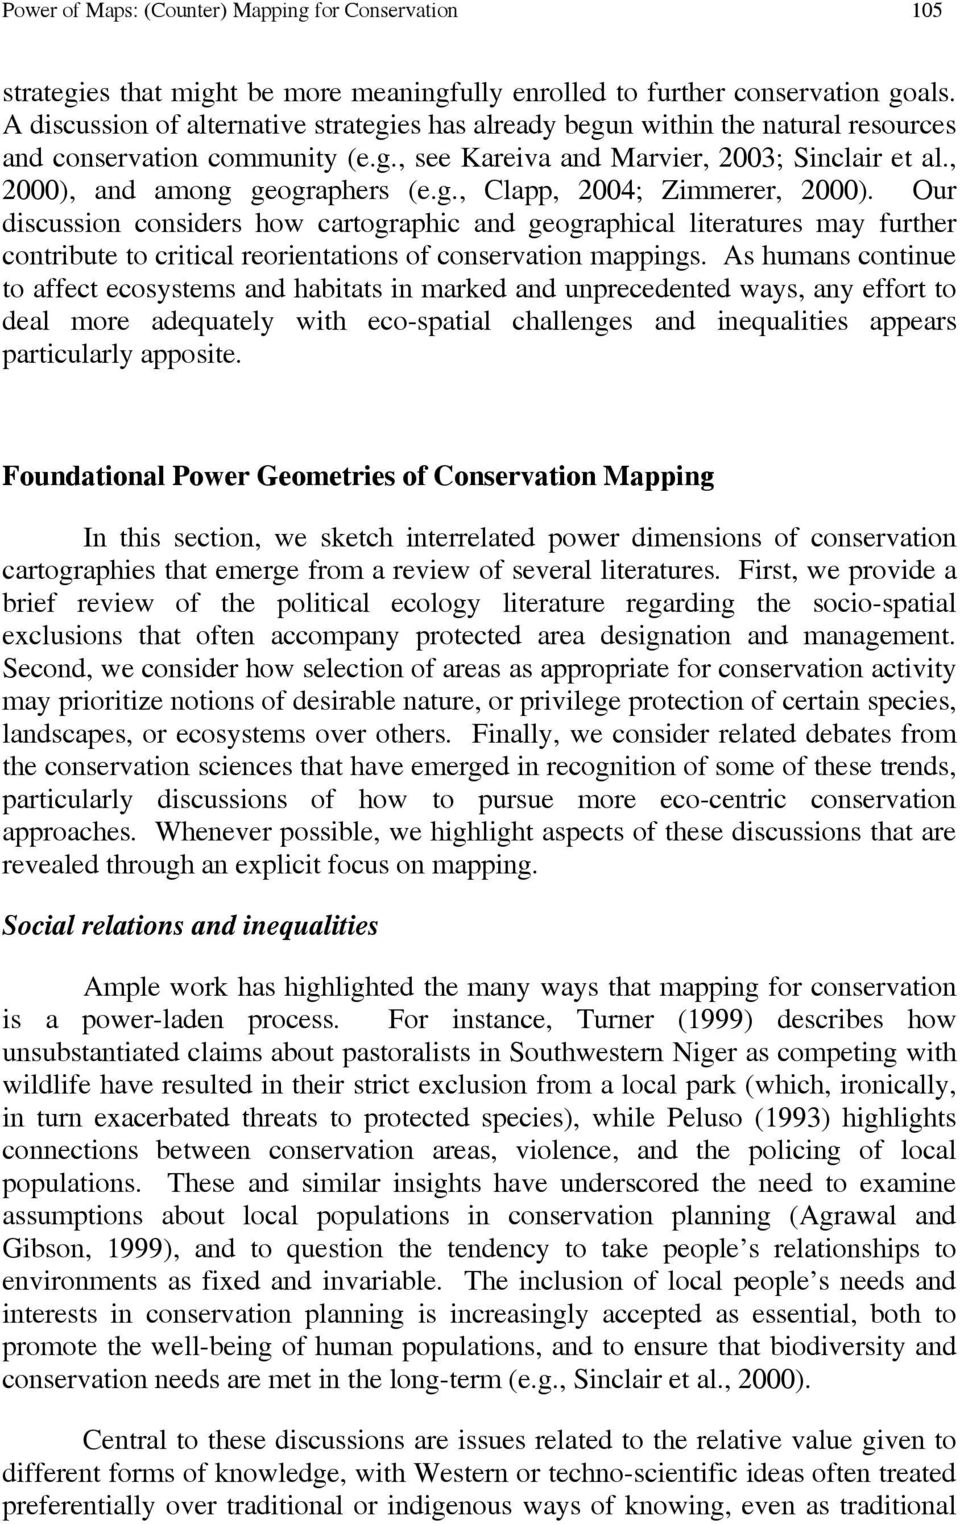 g., Clapp, 2004; Zimmerer, 2000). Our discussion considers how cartographic and geographical literatures may further contribute to critical reorientations of conservation mappings.